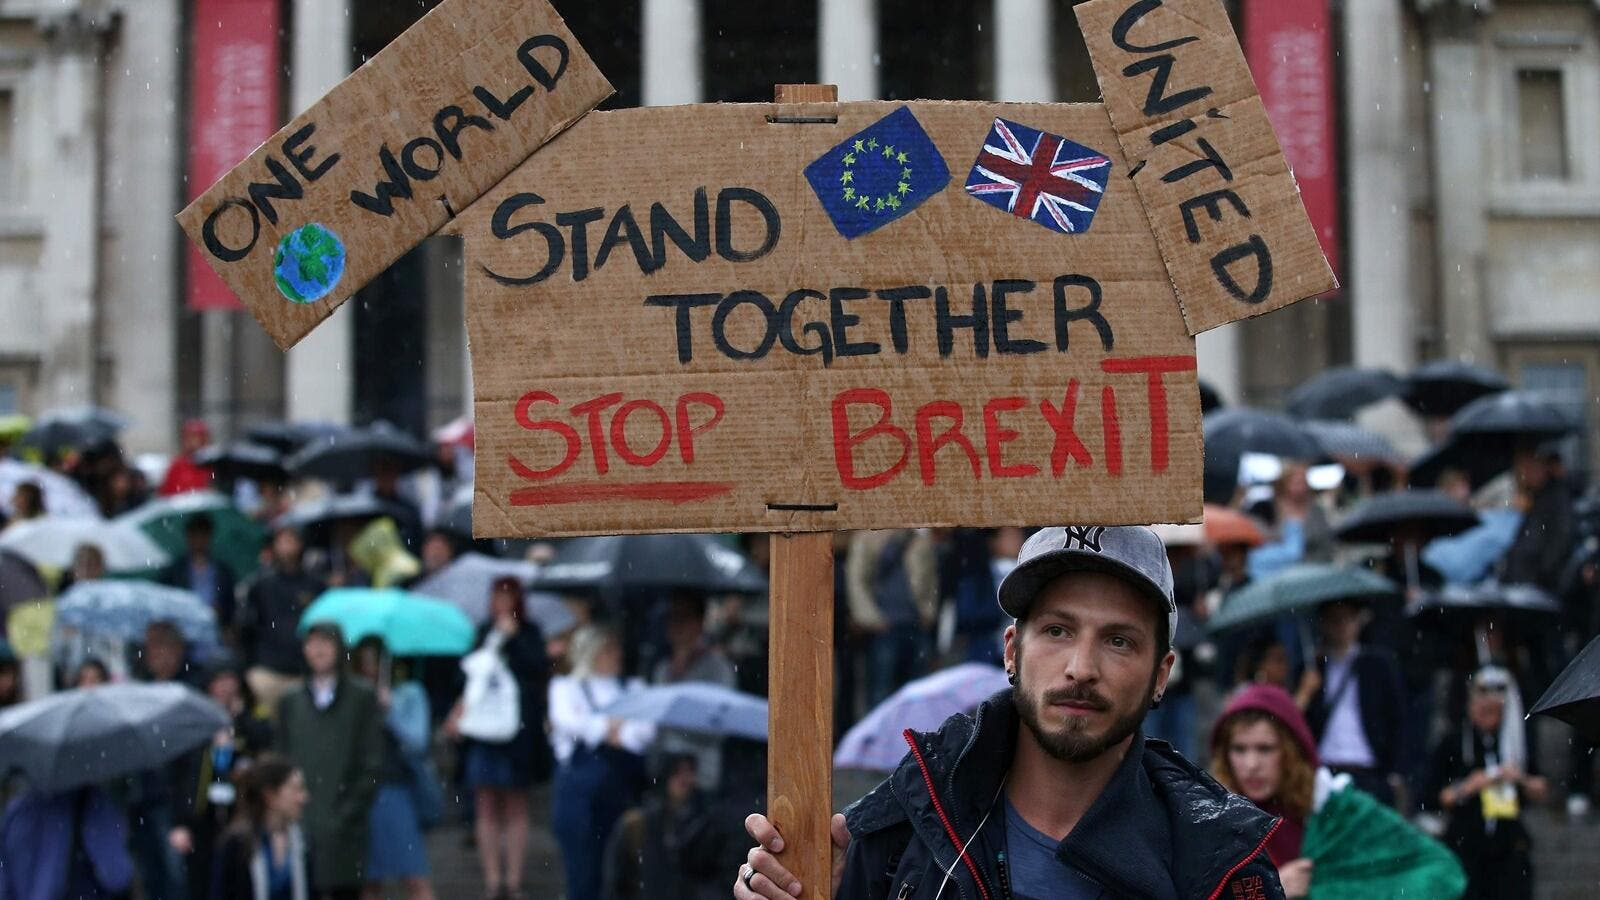 An anti-Brexit protest at Trafalgar Square in central London. (AFP/ File)